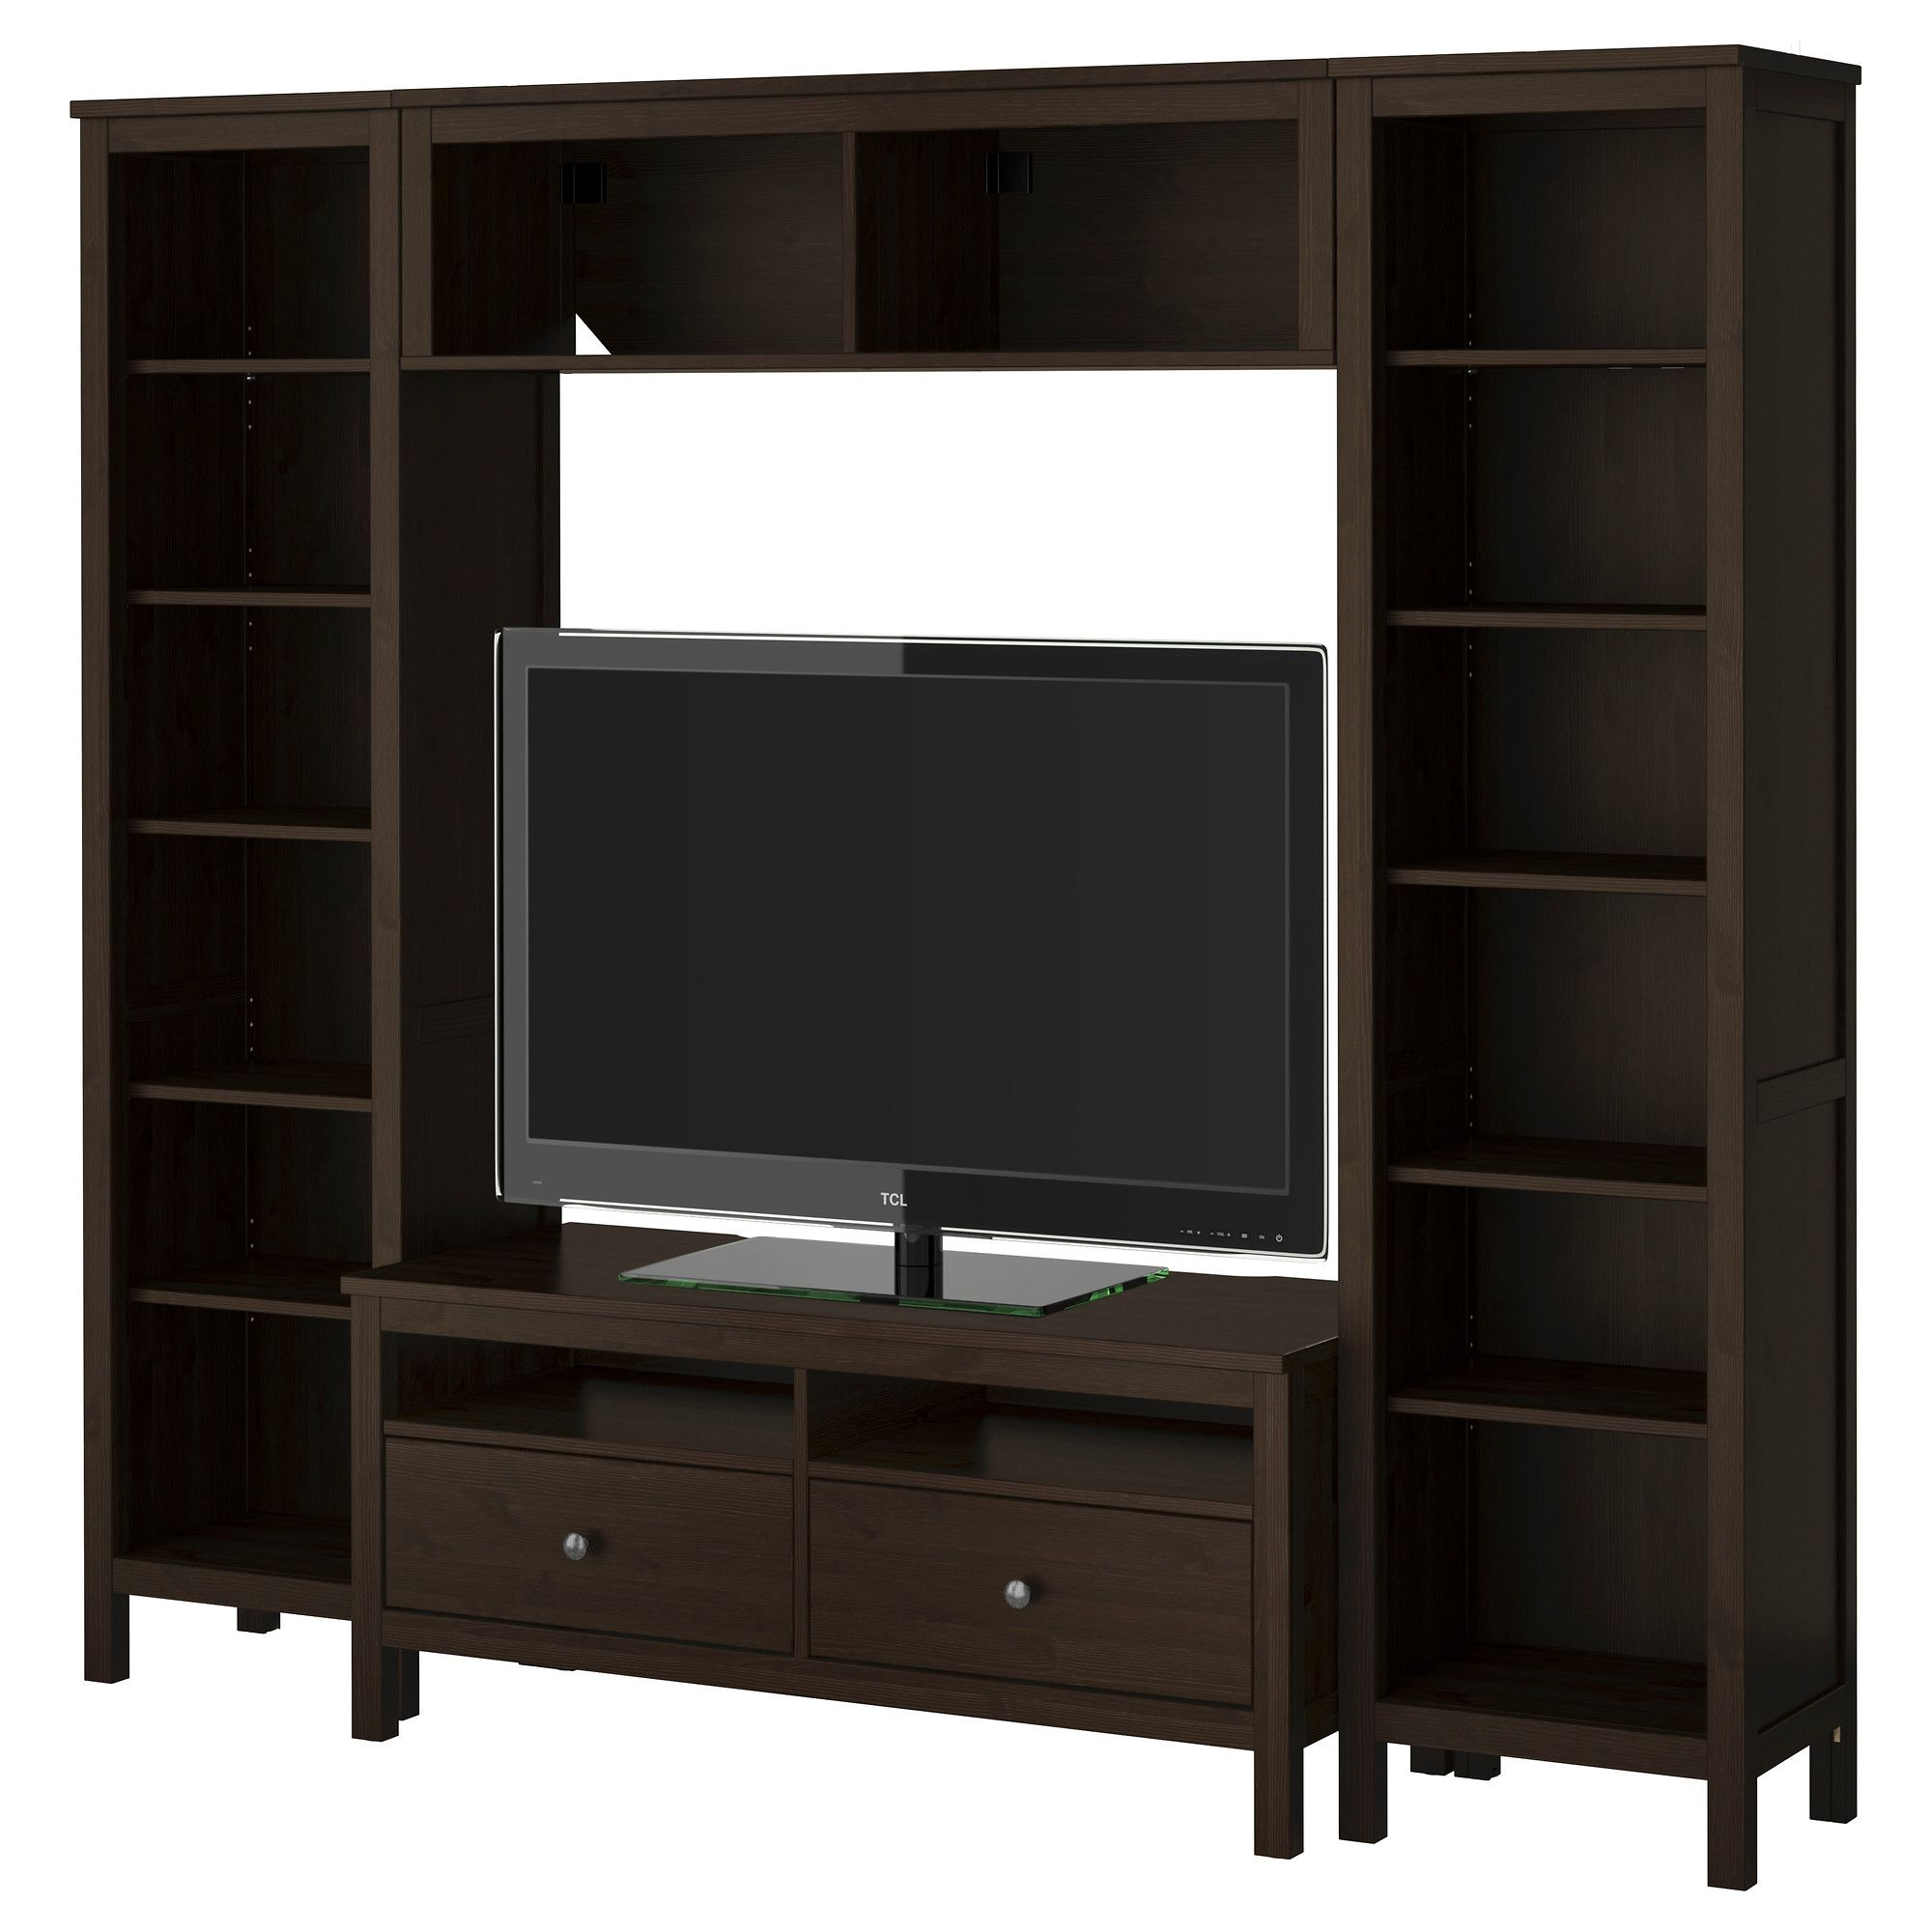 hemnes tv storage combination black brown ikea 49900 would need room measurements for - Meuble Tv Ikea Expedit